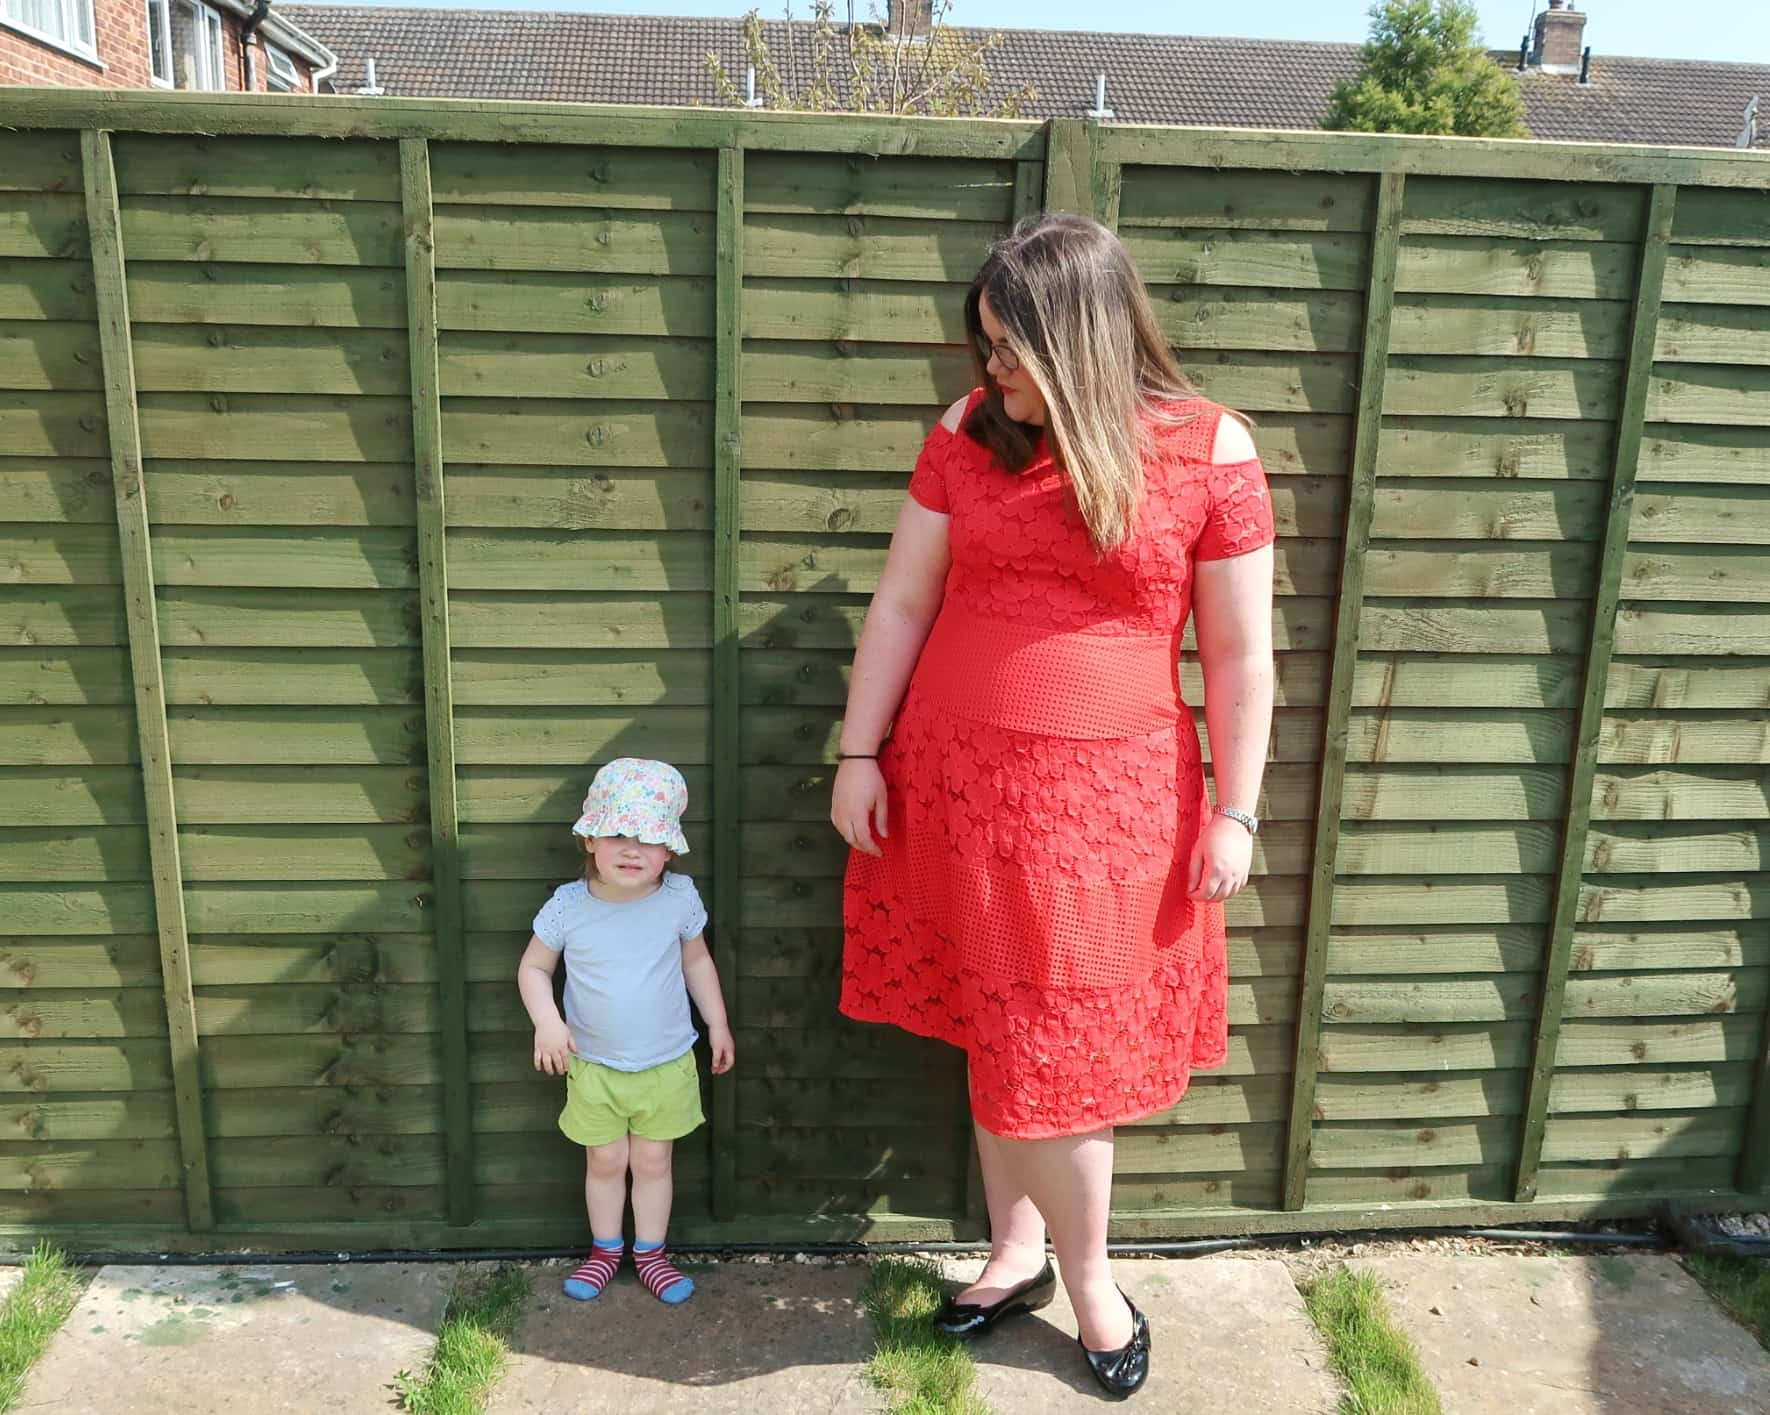 Littlest admiring my Simply Be outfit